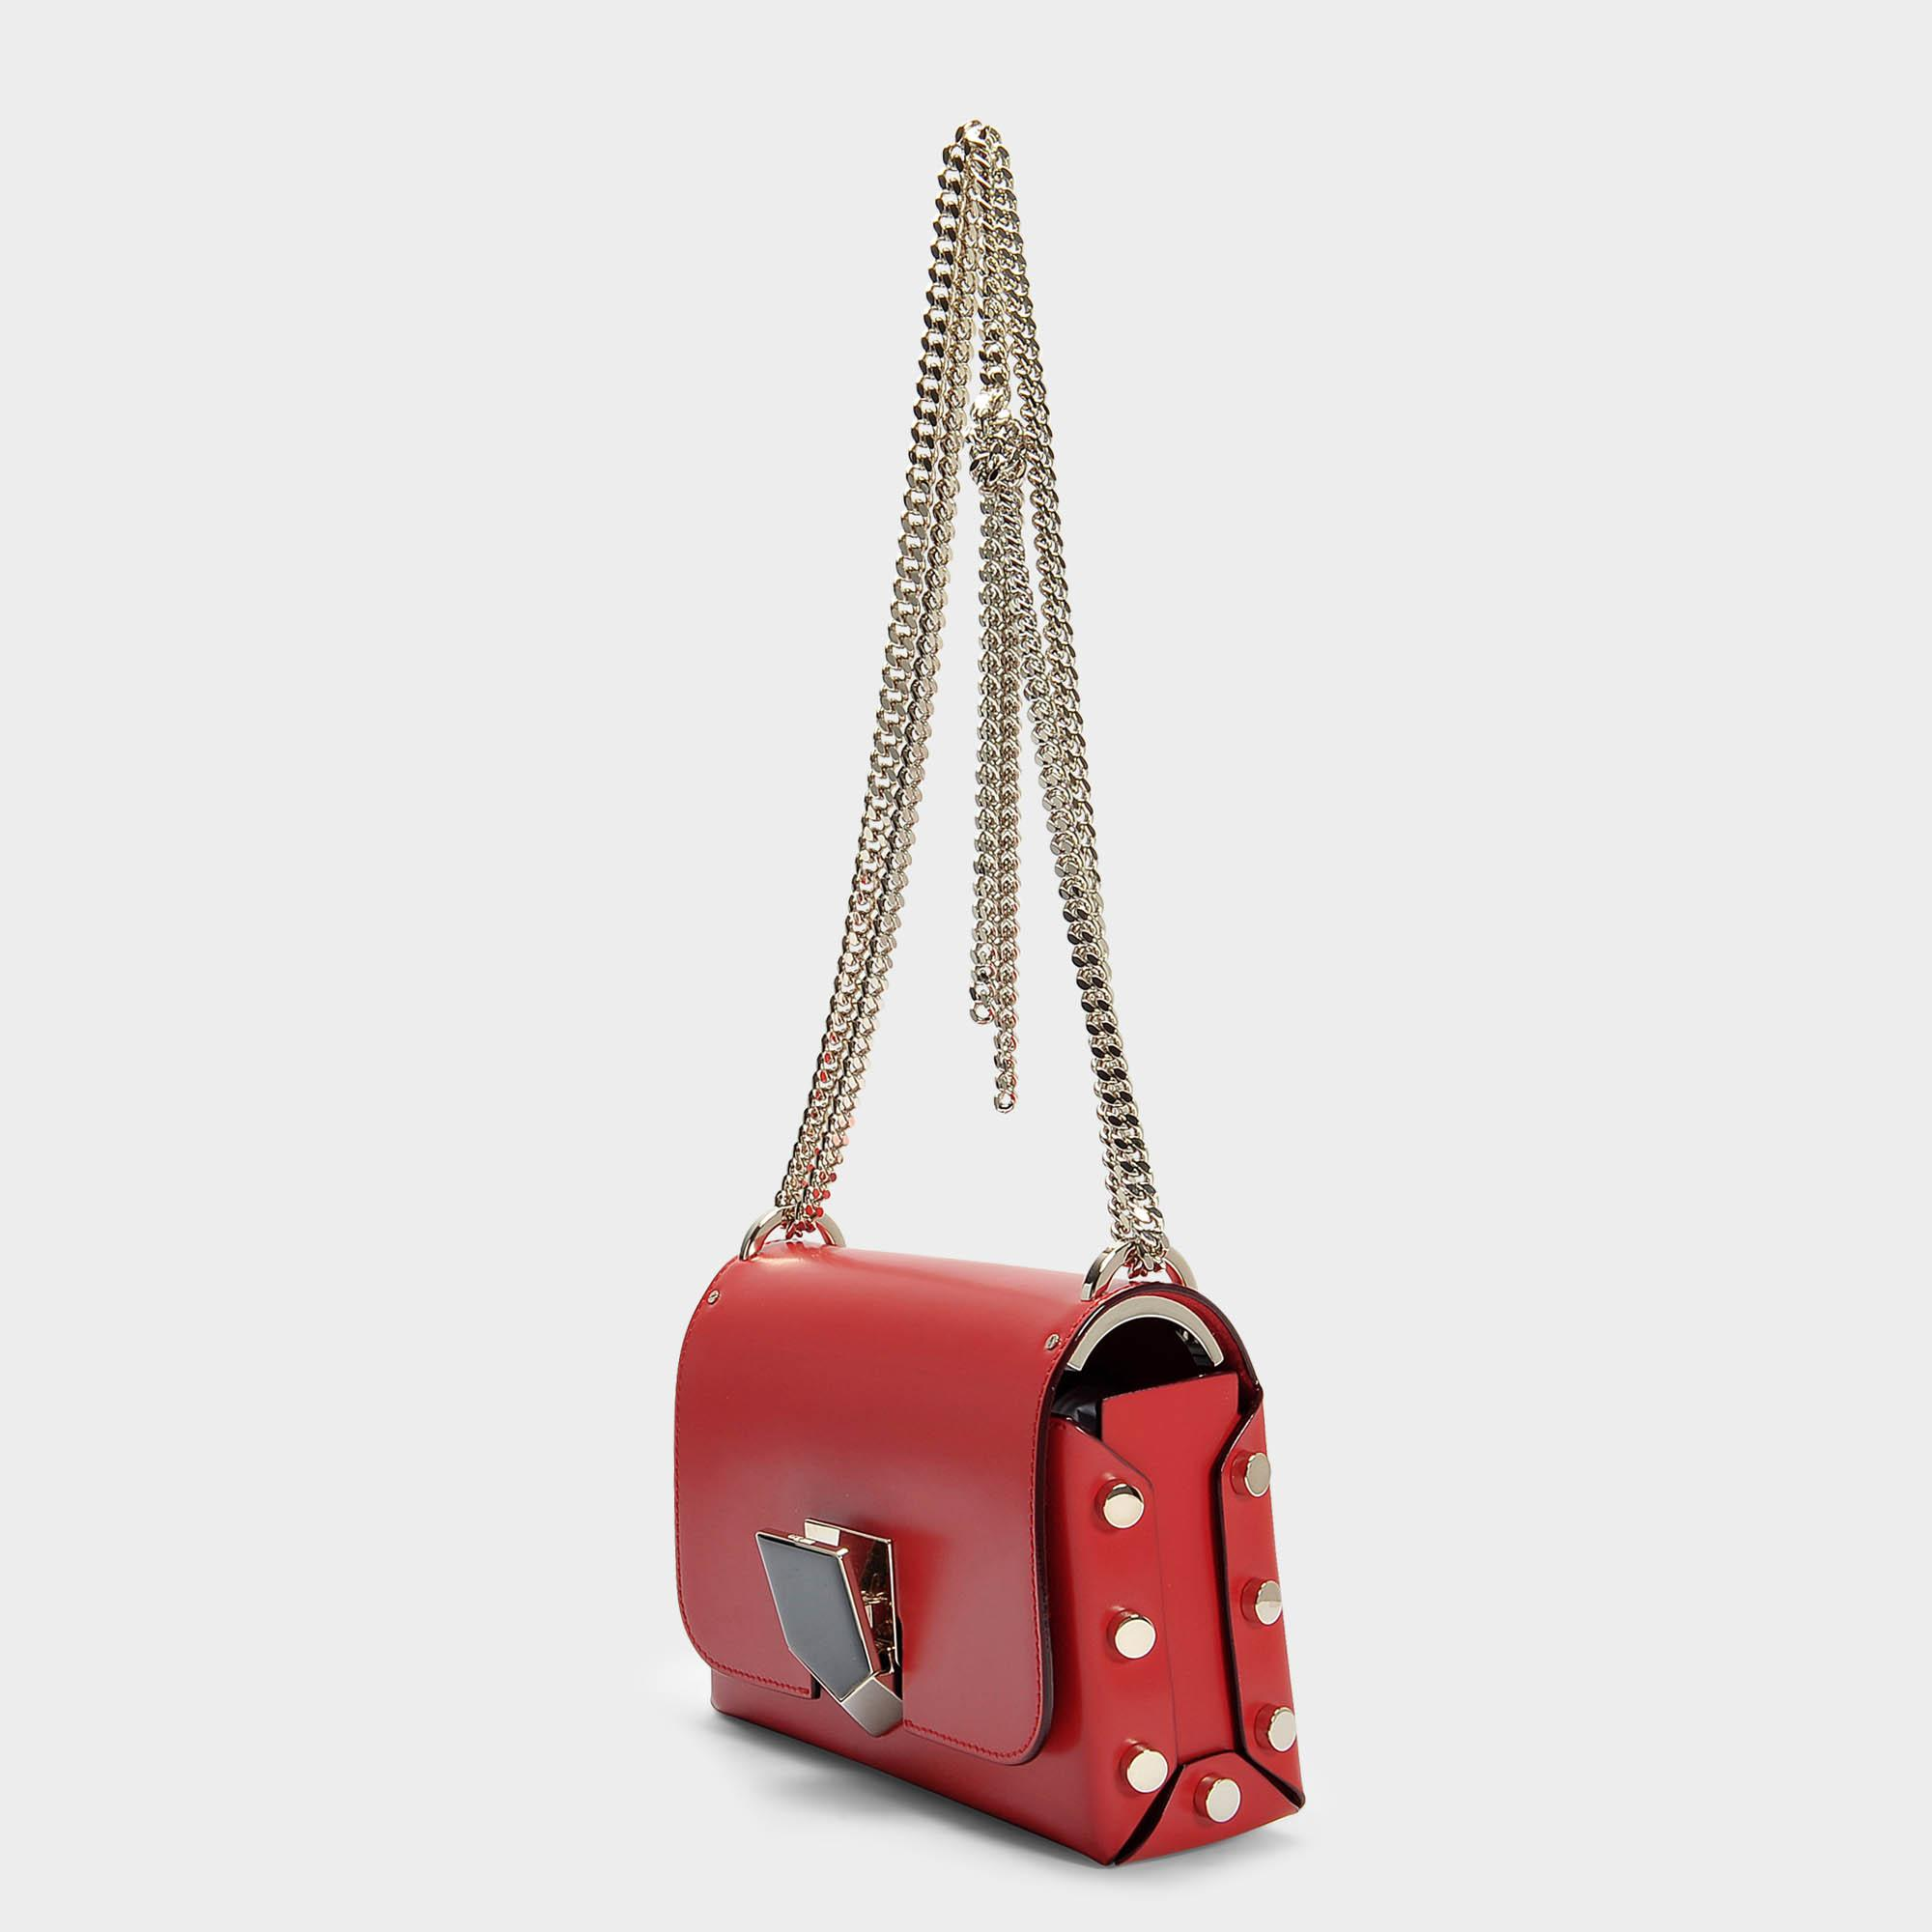 Lockett Petite Bag in Red and Chrome Spazzolato Leather Jimmy Choo London 5f752